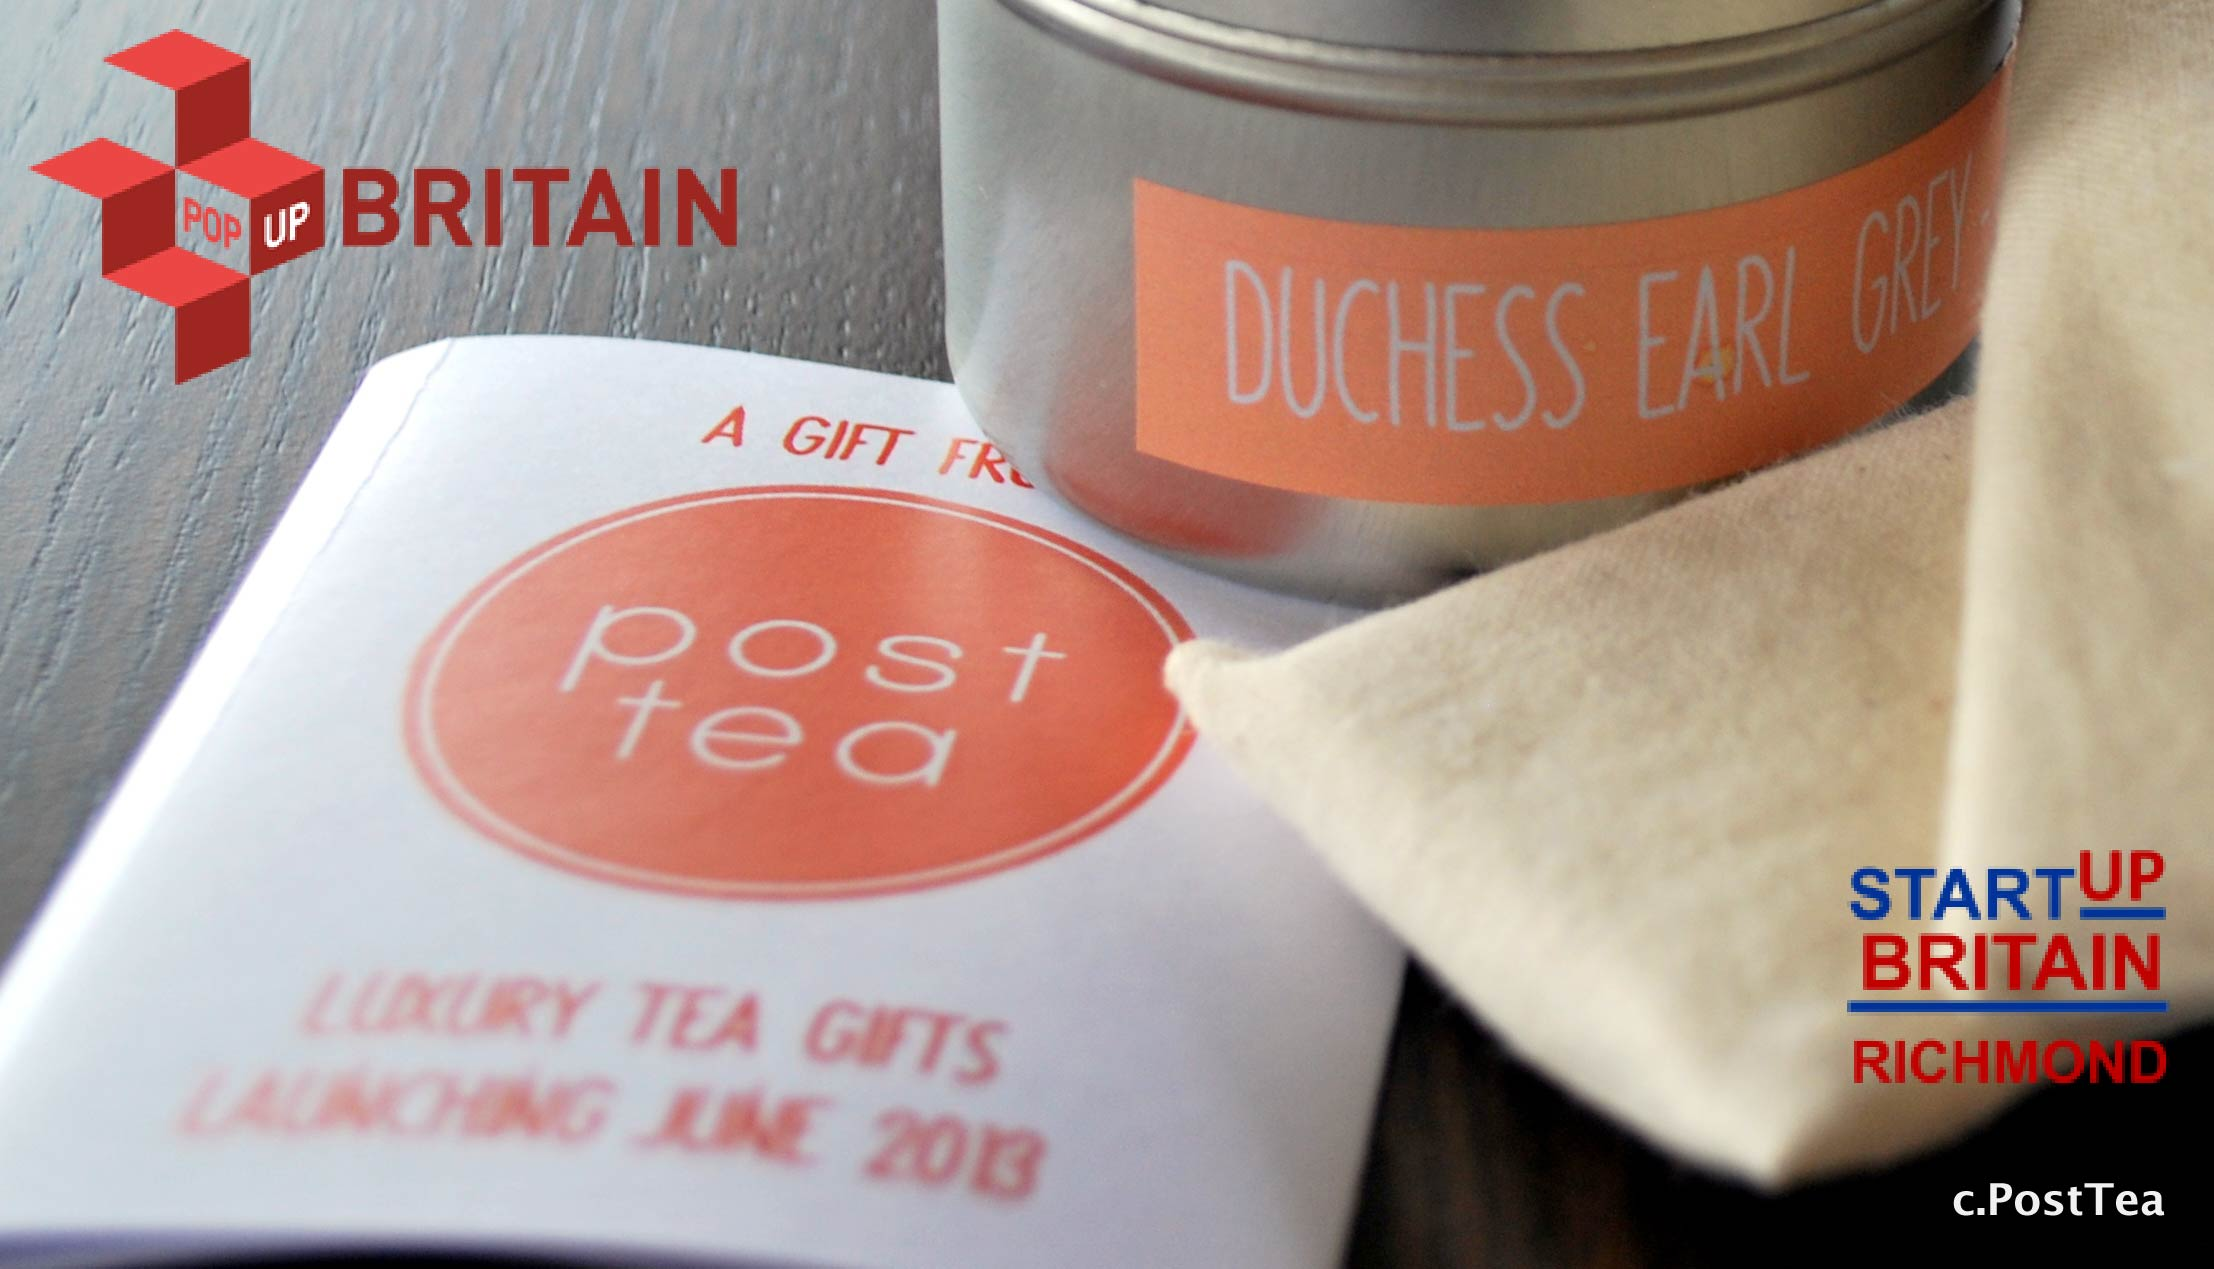 PostTea Meets Pop Up Britain!